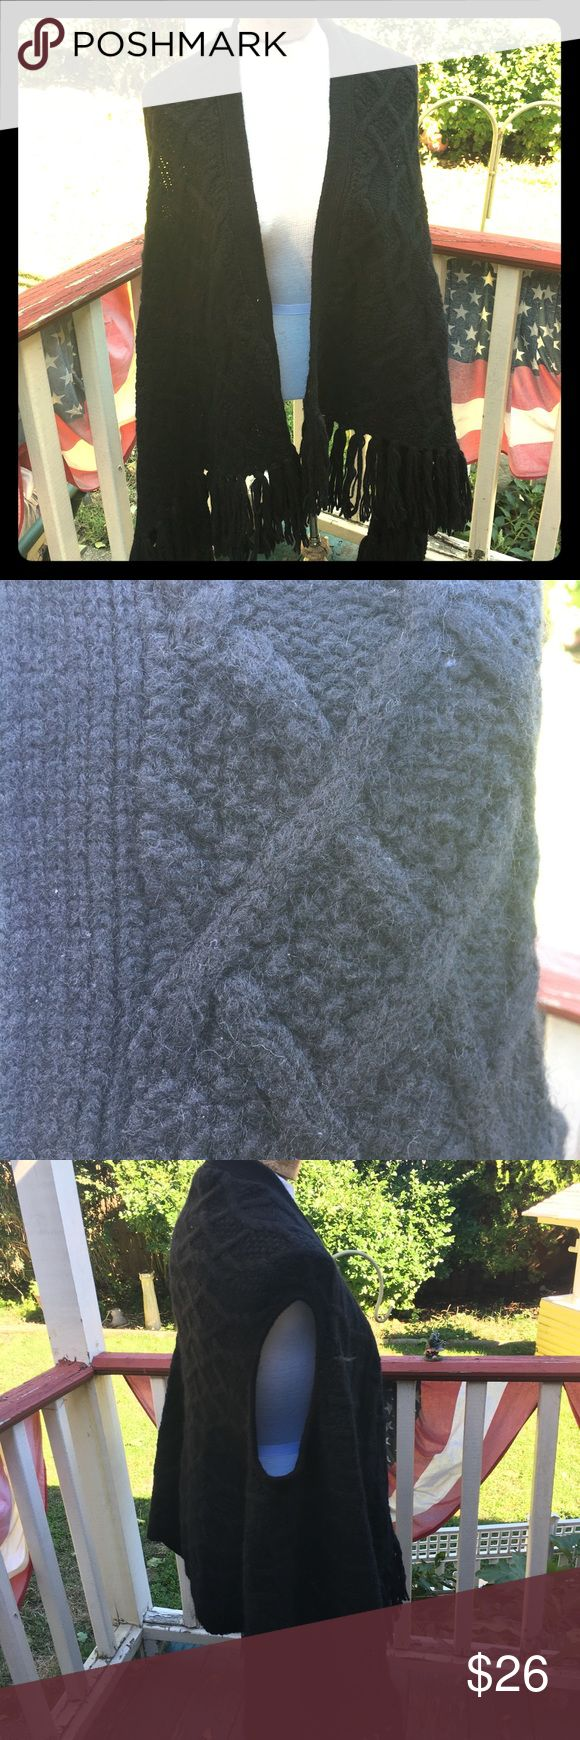 Gorgeous DKNY cape Wool blend. Very warm and cozy! Never used DKNY Sweaters Shrugs & Ponchos